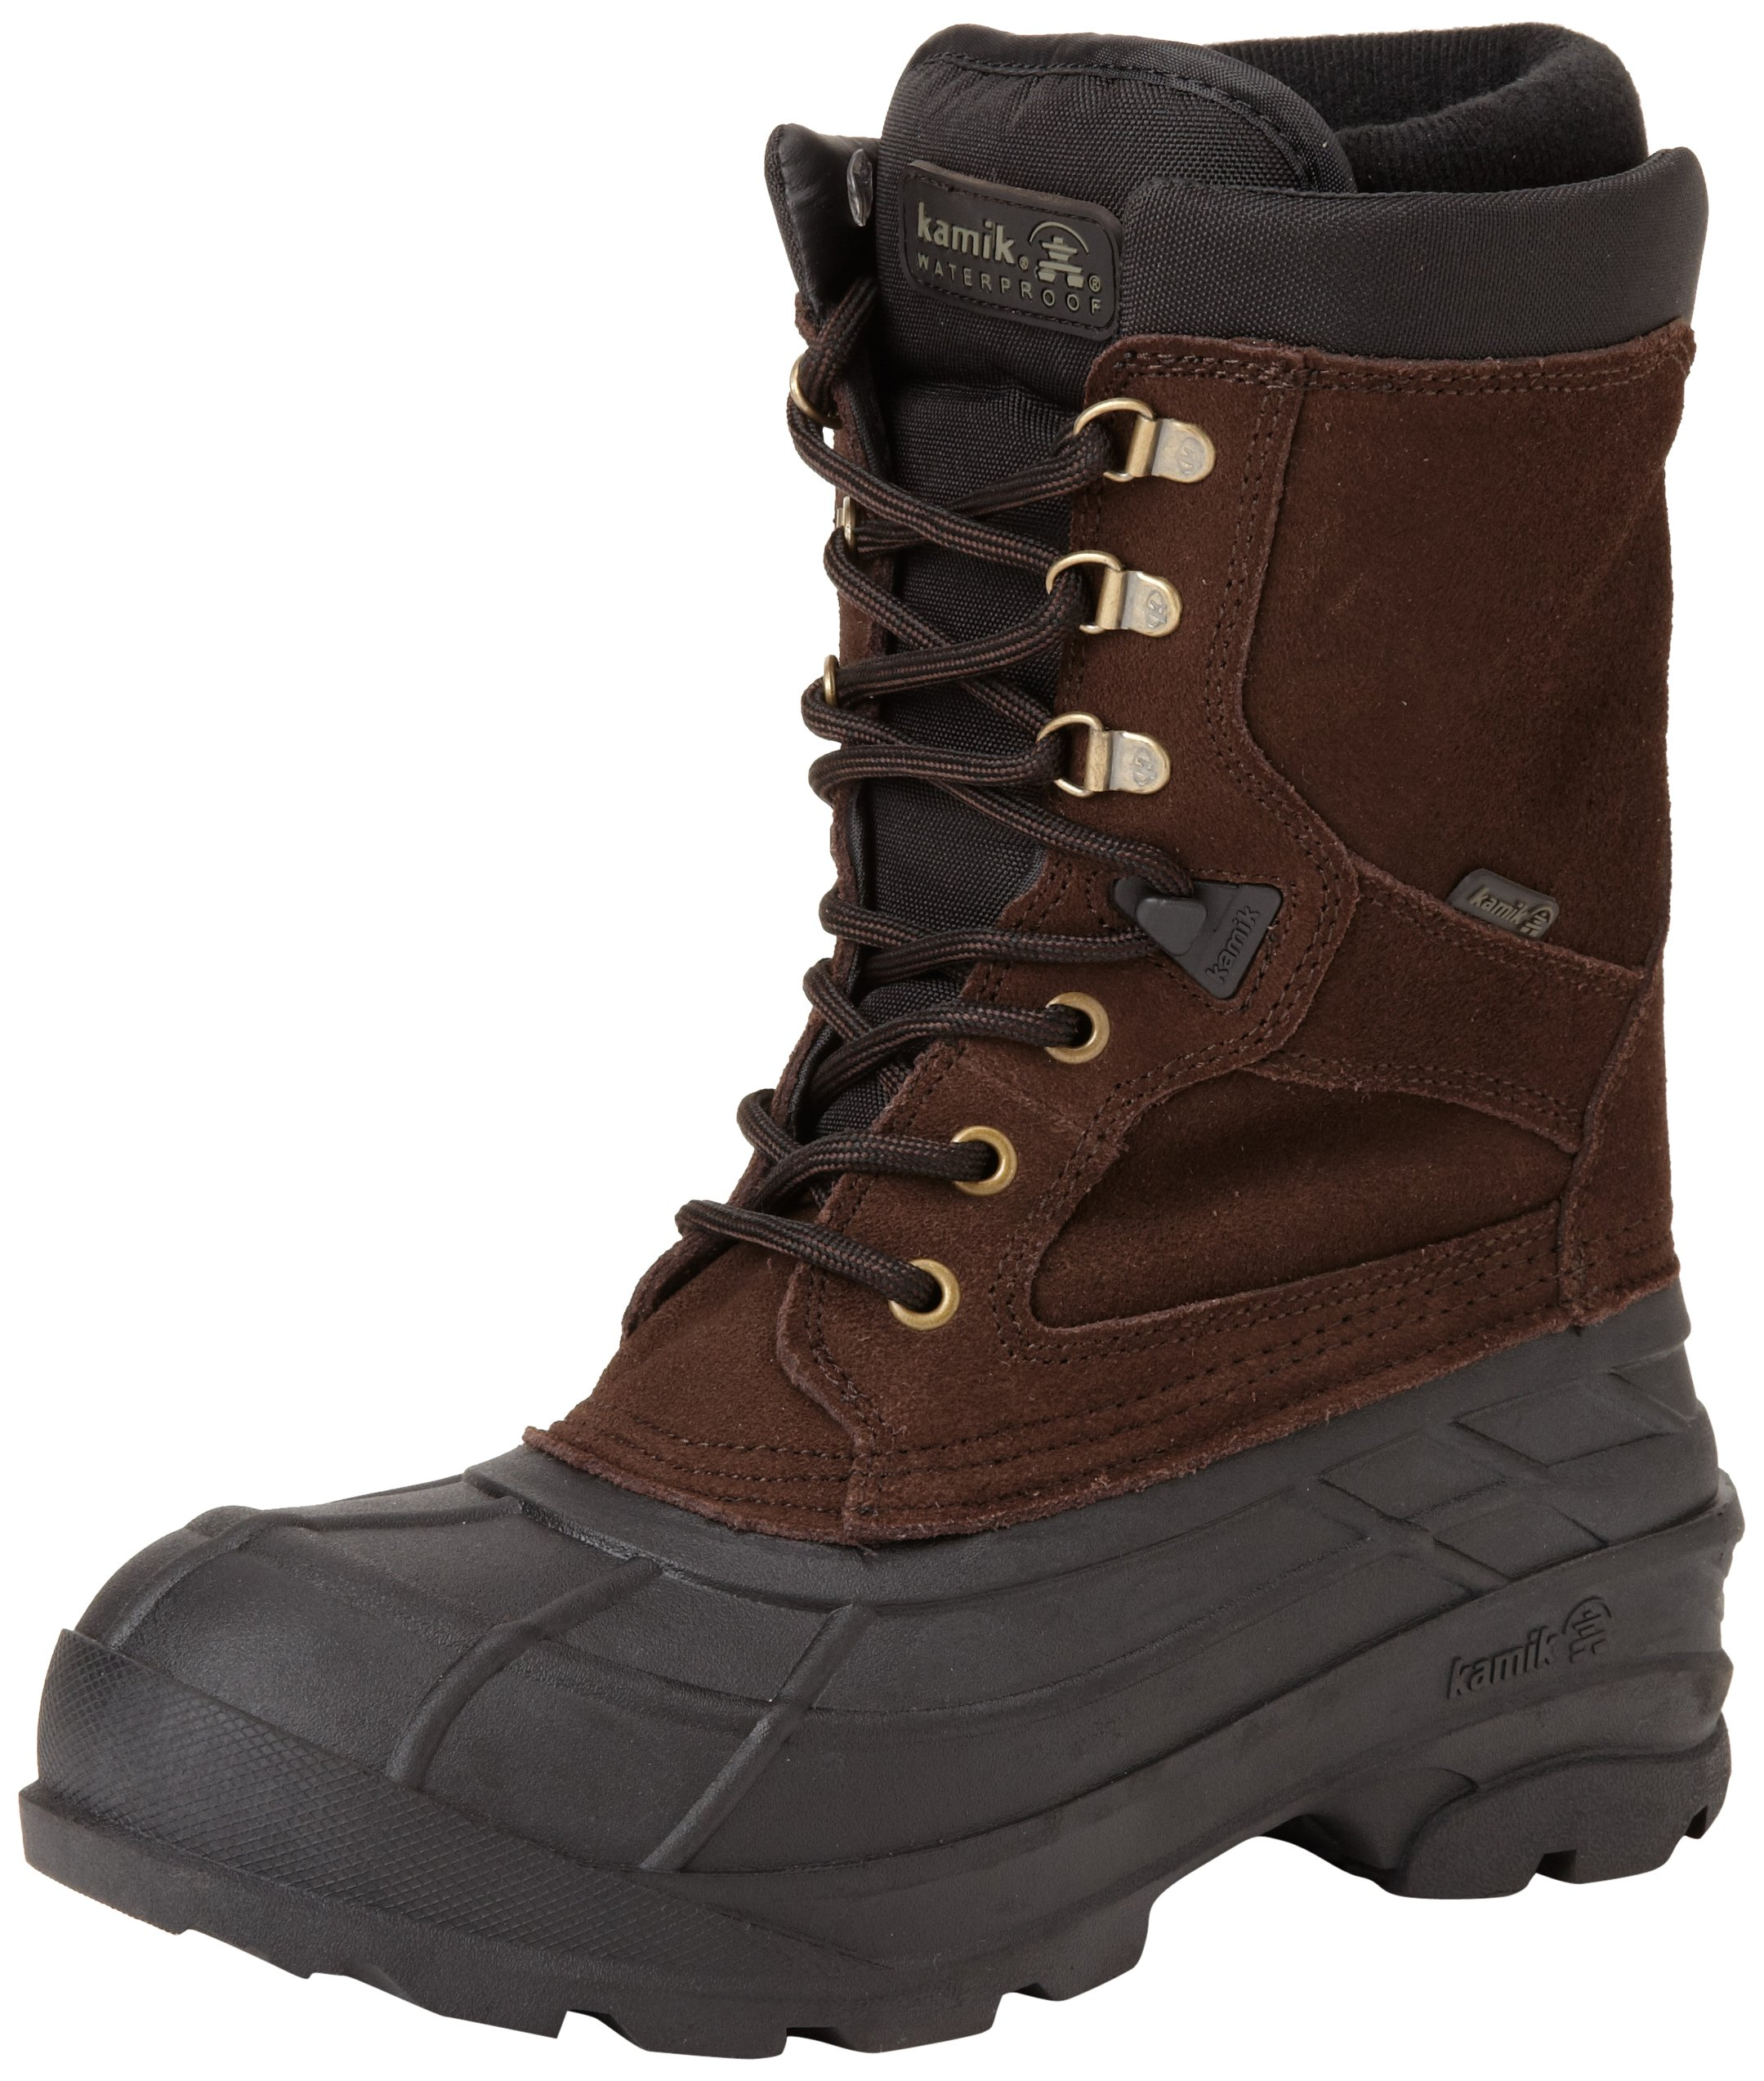 Kamik Men's Nationplus Snow Boot,Dark Brown,14 M US by Kamik